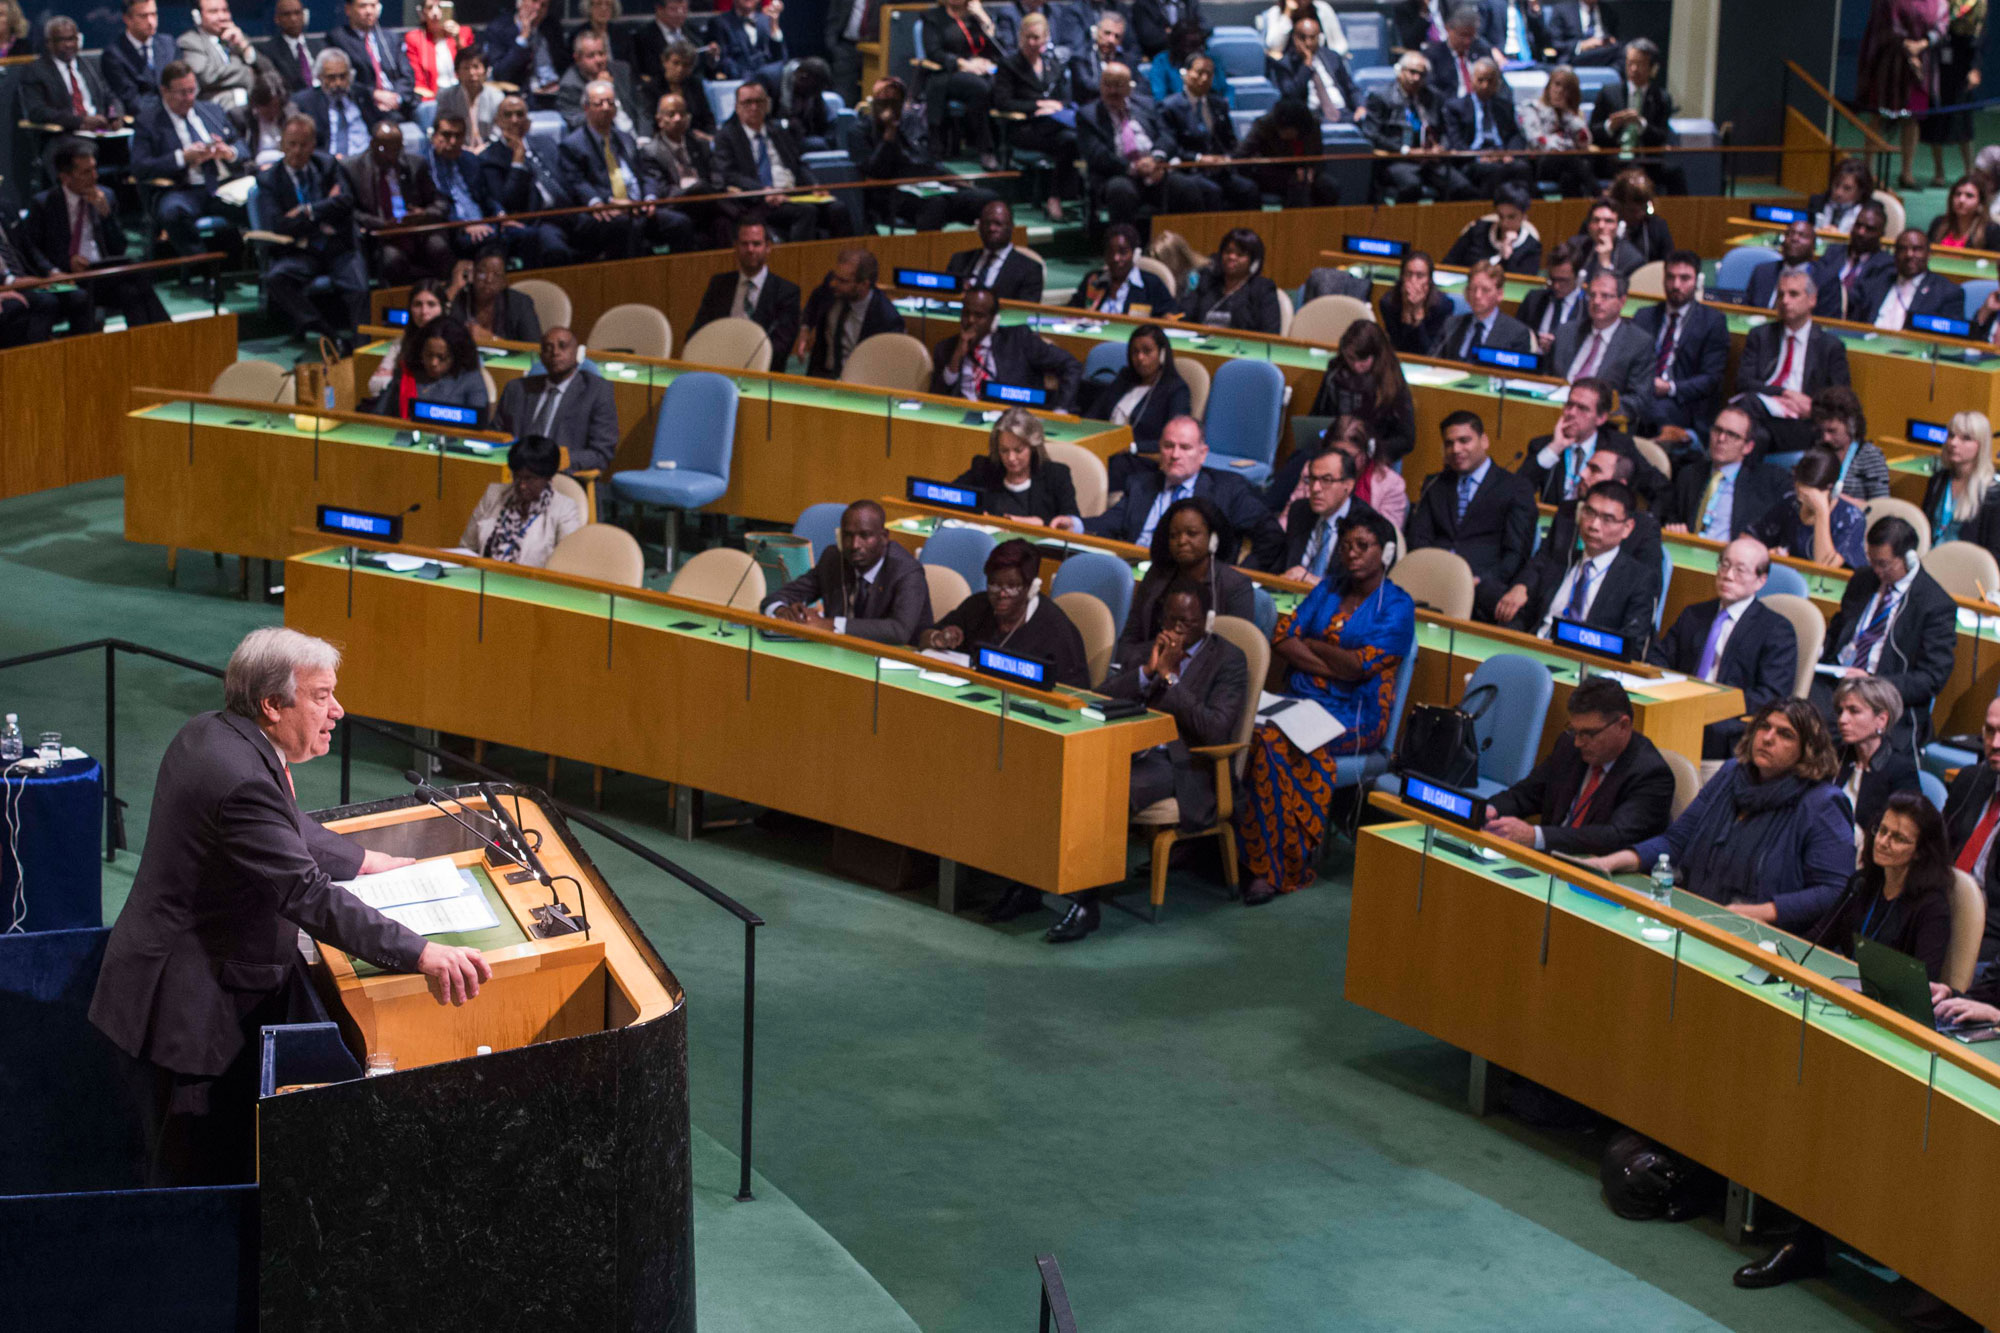 António Guterres appointed next UN Secretary-General by acclamation Secretary-General-designate, António Guterres, addresses the General Assembly on the occasion of his appointment as the next Secretary-General of the United Nations. UN Photo/Amanda Voisard